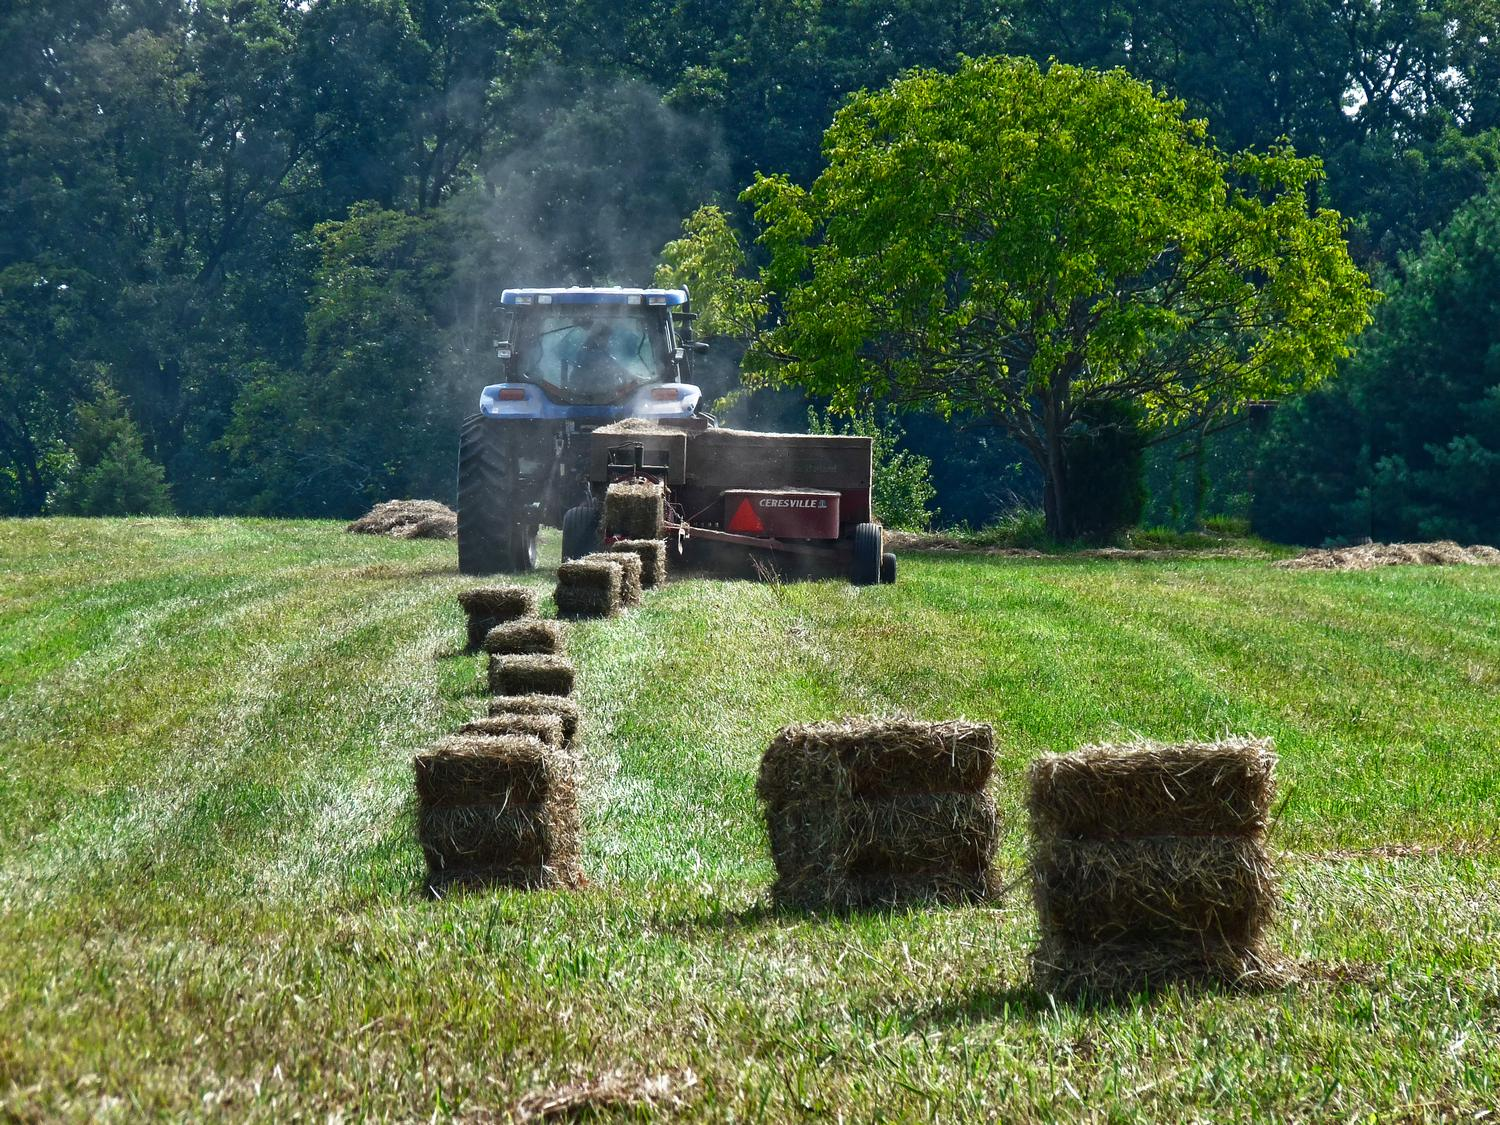 tractor making bales of hay - Makin' hay - Panasonic DMC-FZ28 - Tony Karp, design, art, photography, techno-impressionist, techno-impressionism, aerial photography , drone , drones , dji , mavic pro , video , 3D printing - Books -